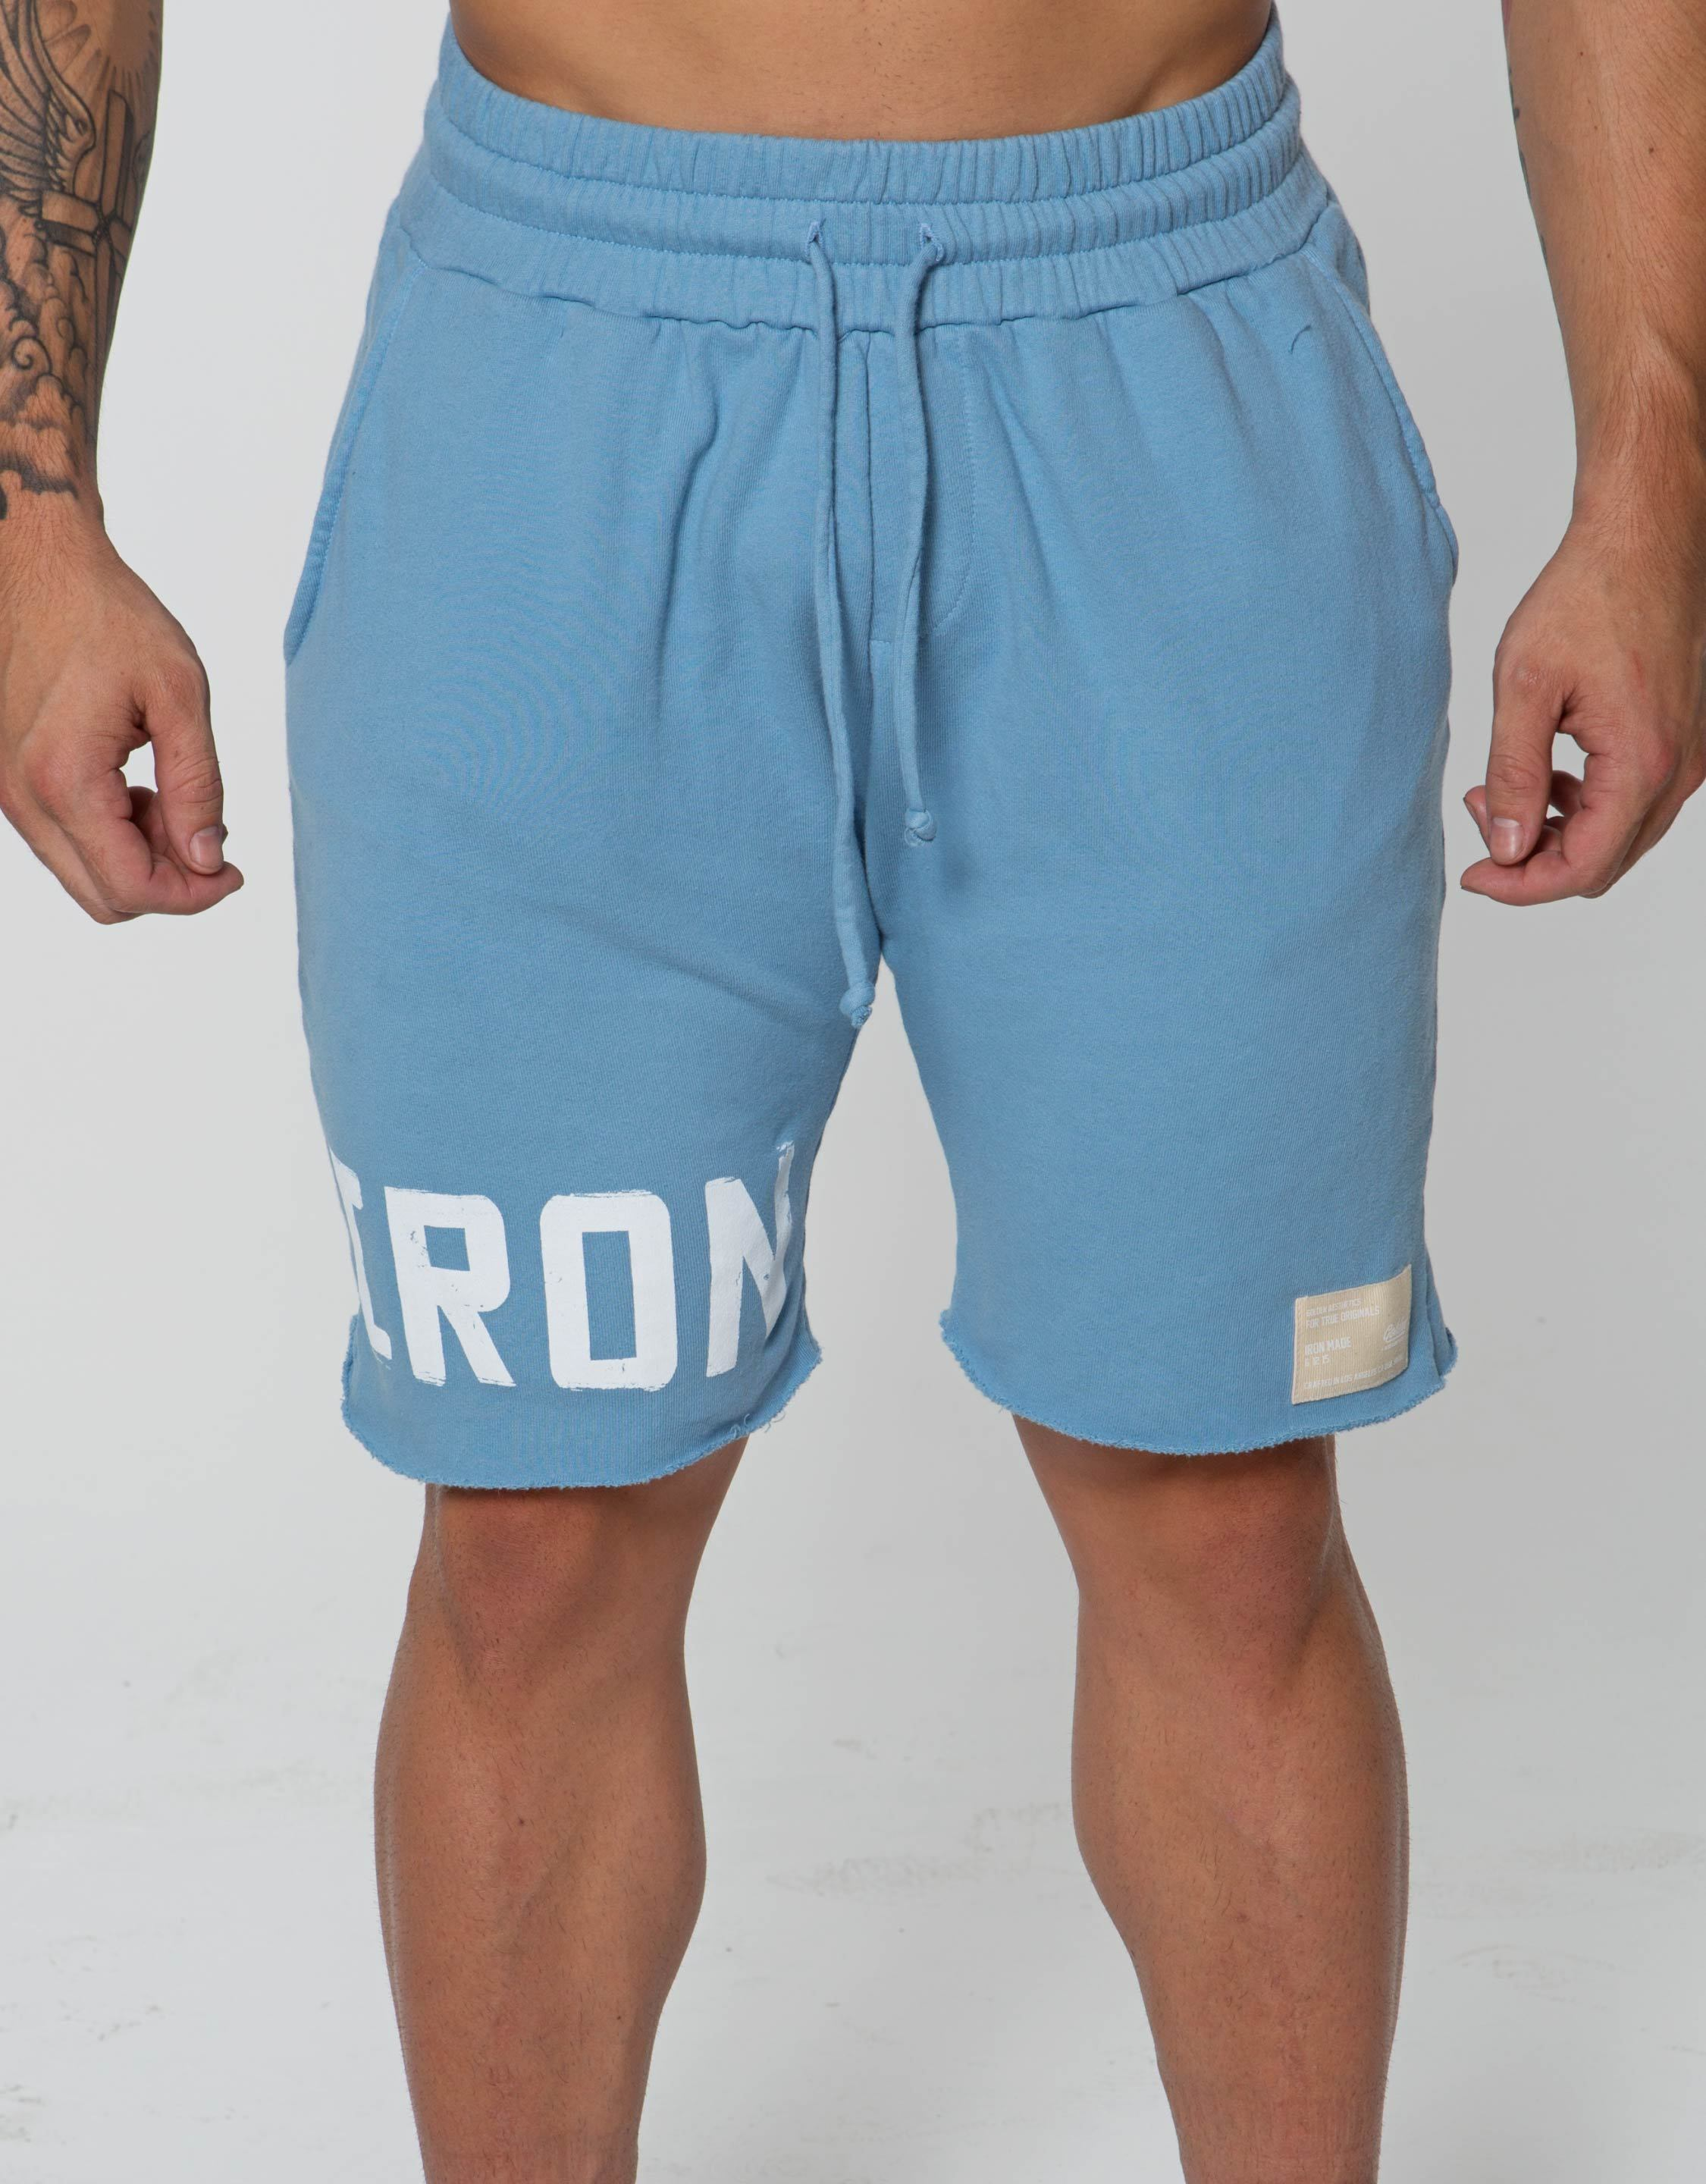 IRON Raw Shorts - Faded Blue - Golden Aesthetics